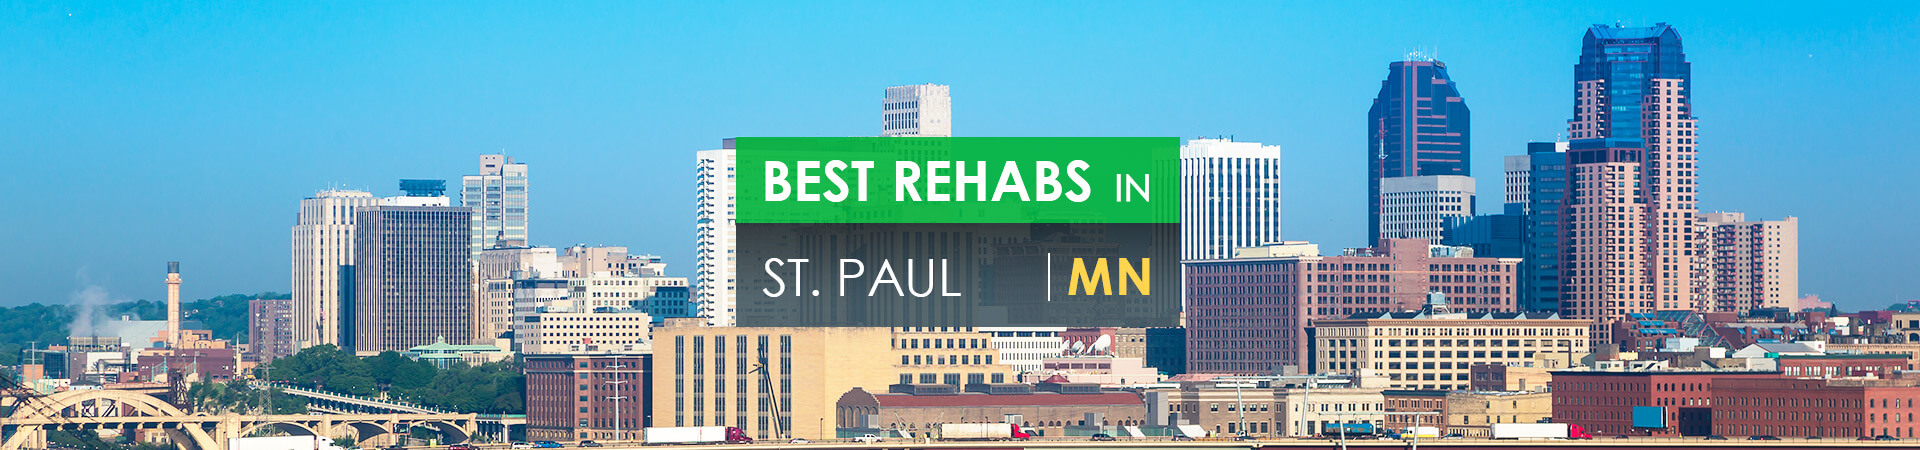 Best rehabs in St. Paul, MN